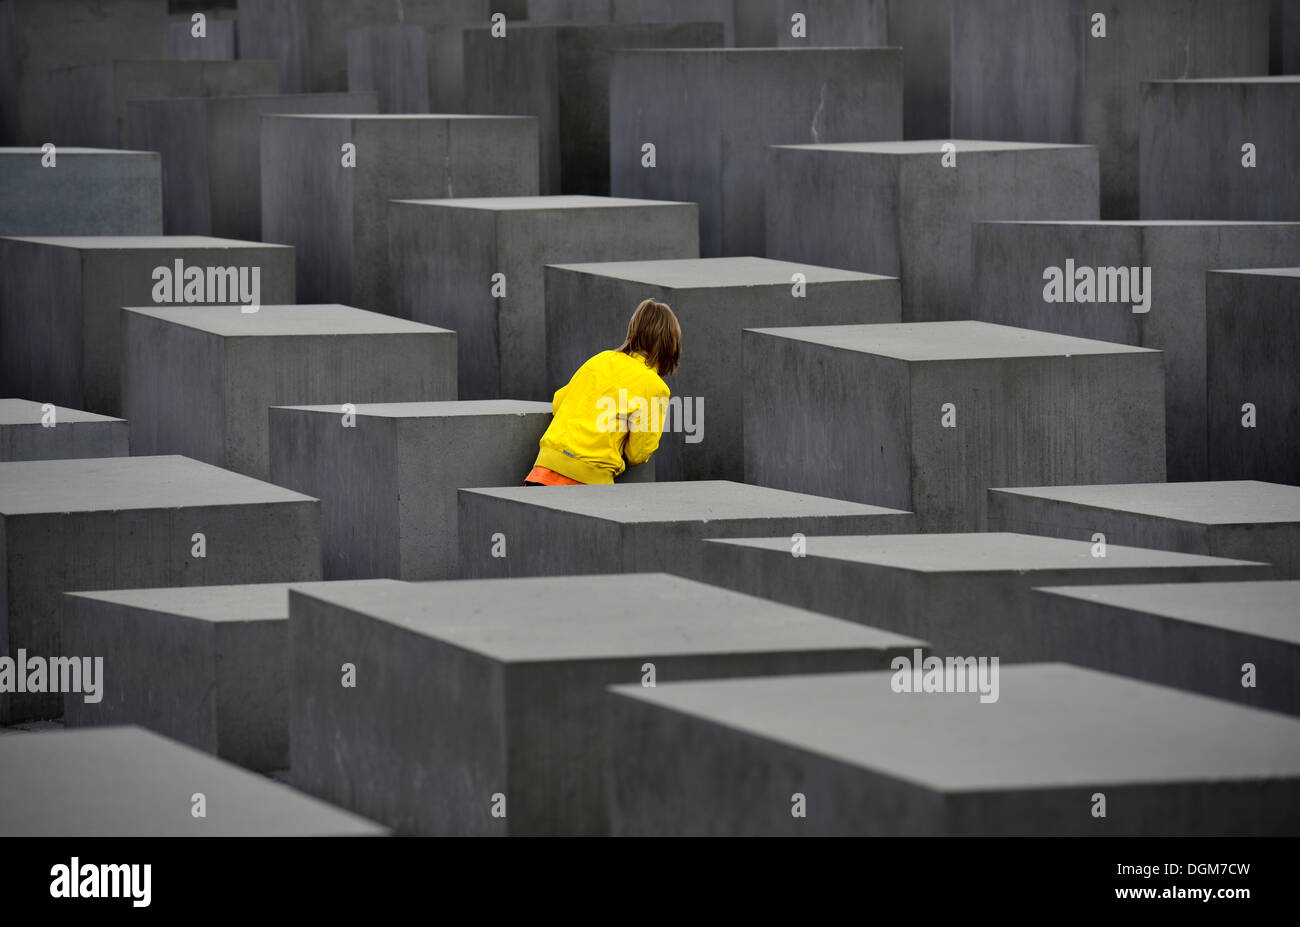 Memorial to the Murdered Jews of Europe, child playing hide and seek at the Holocaust Memorial designed by architect Peter - Stock Image